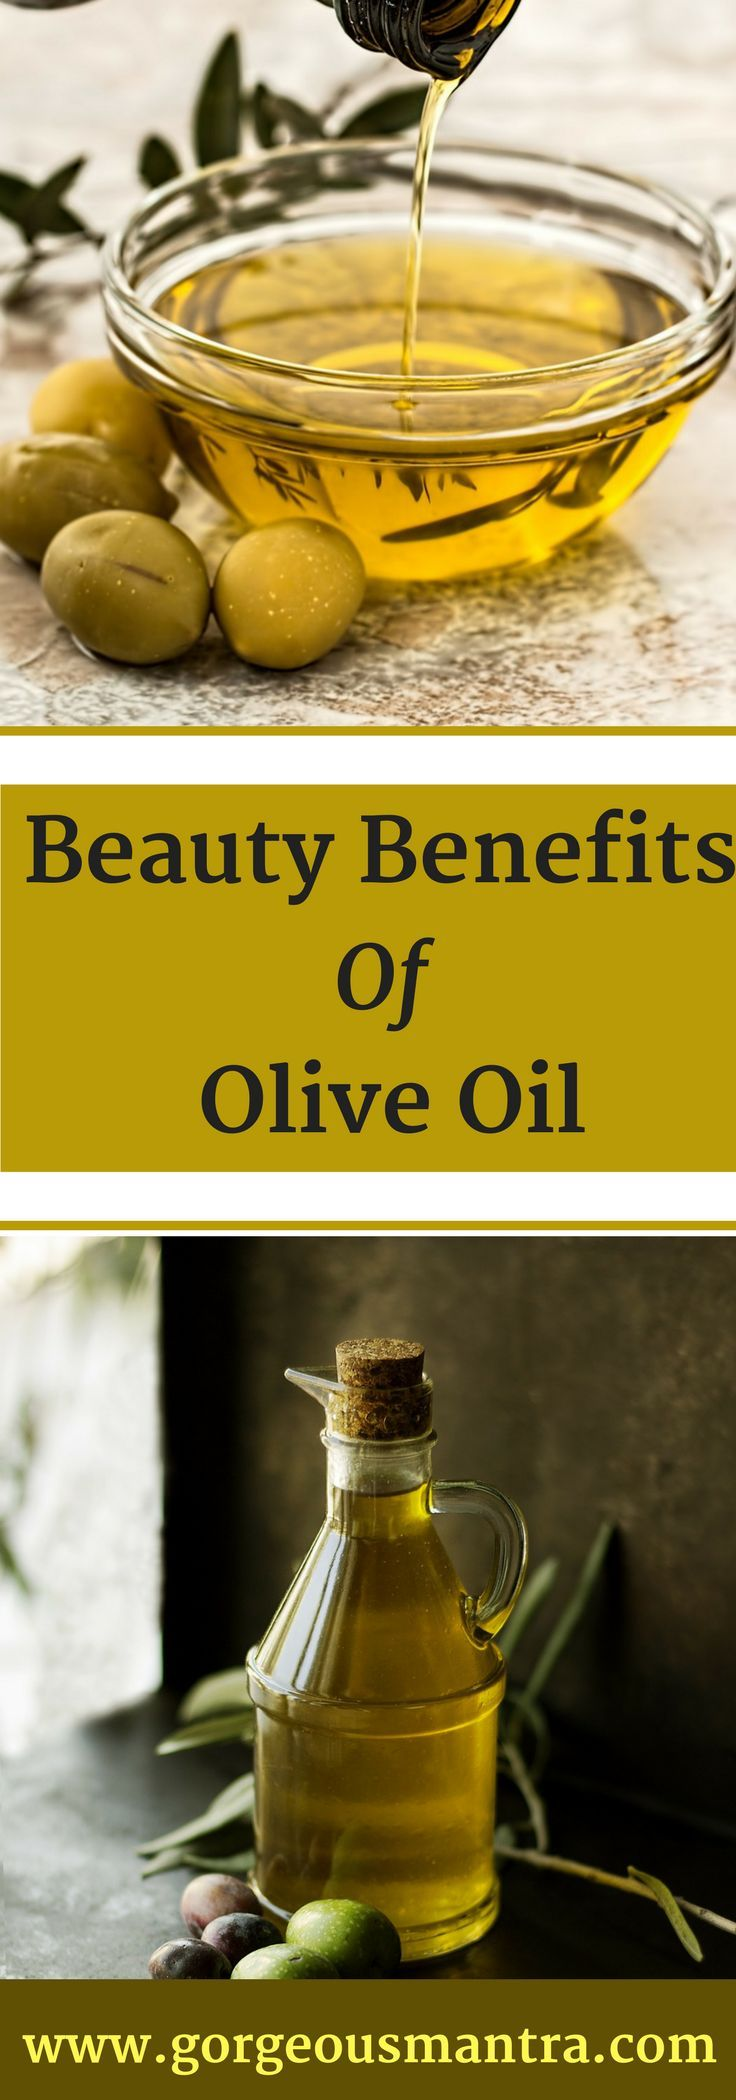 Beauty Benefits and Uses of Olive Oil. Use Olive Oil for